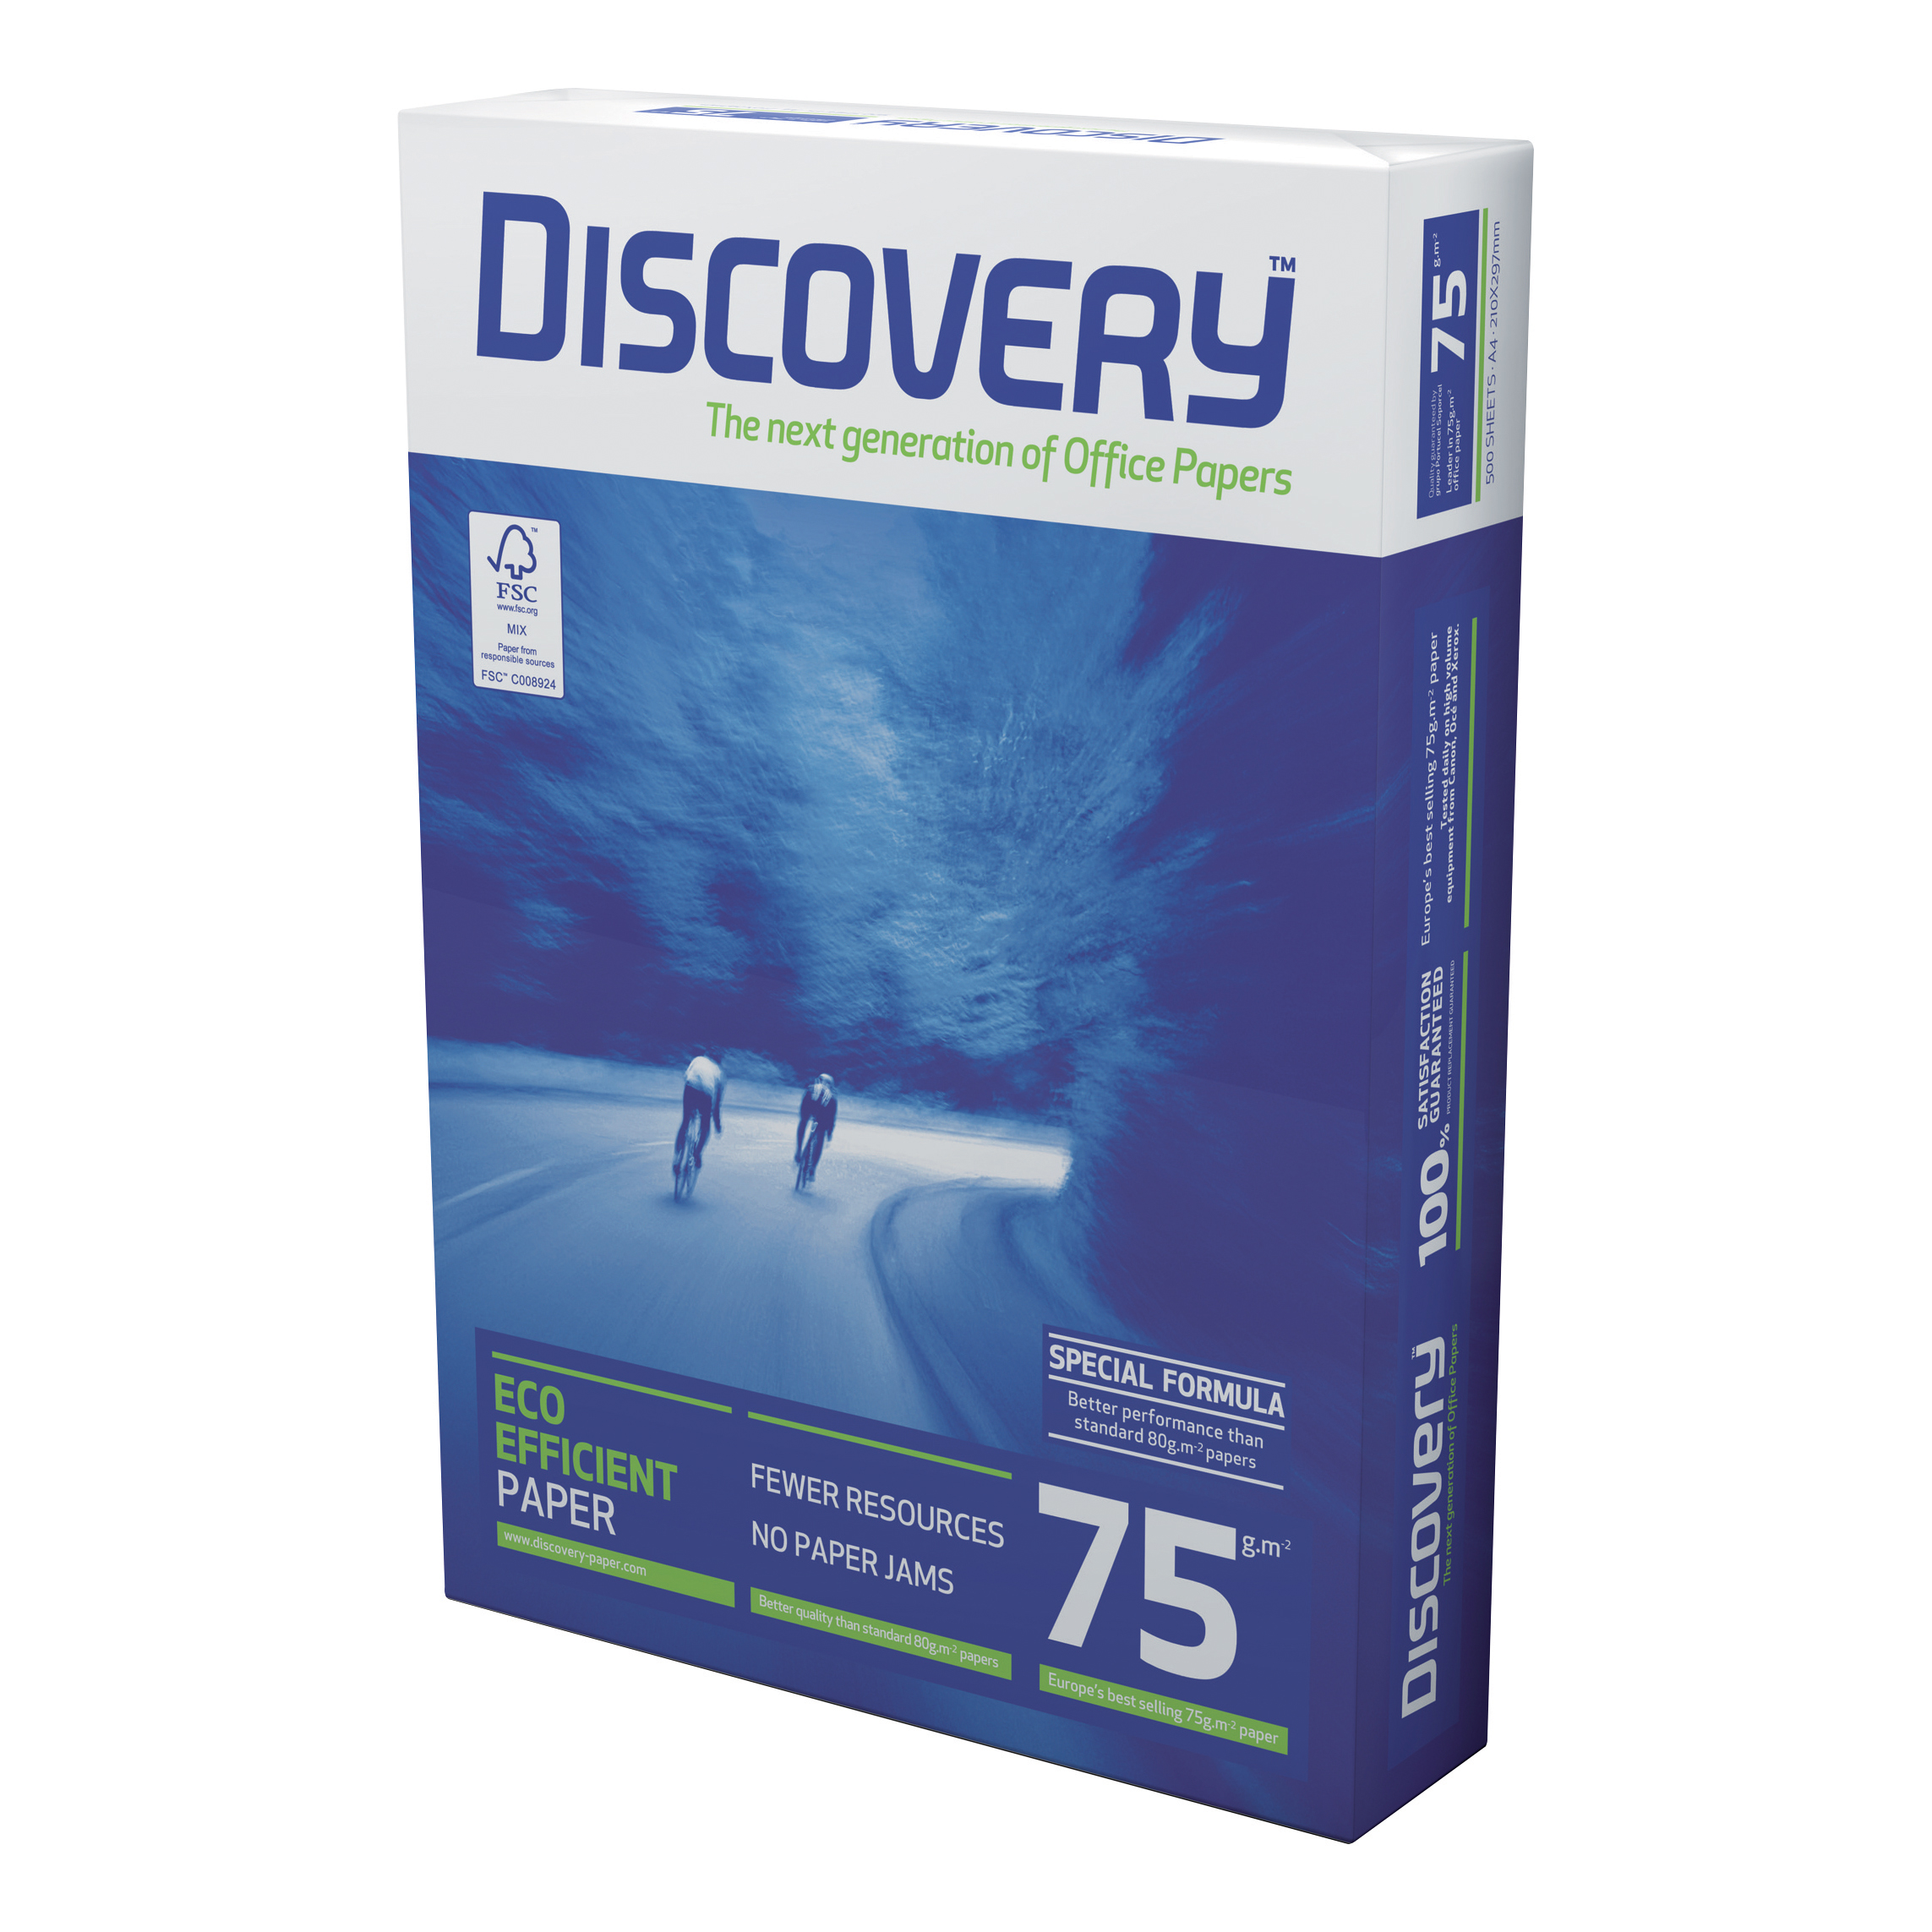 Discovery Everyday Paper FSC 5x Ream-wrapped Pks 75gsm A3 White Ref NDI0750007 500 Sheets